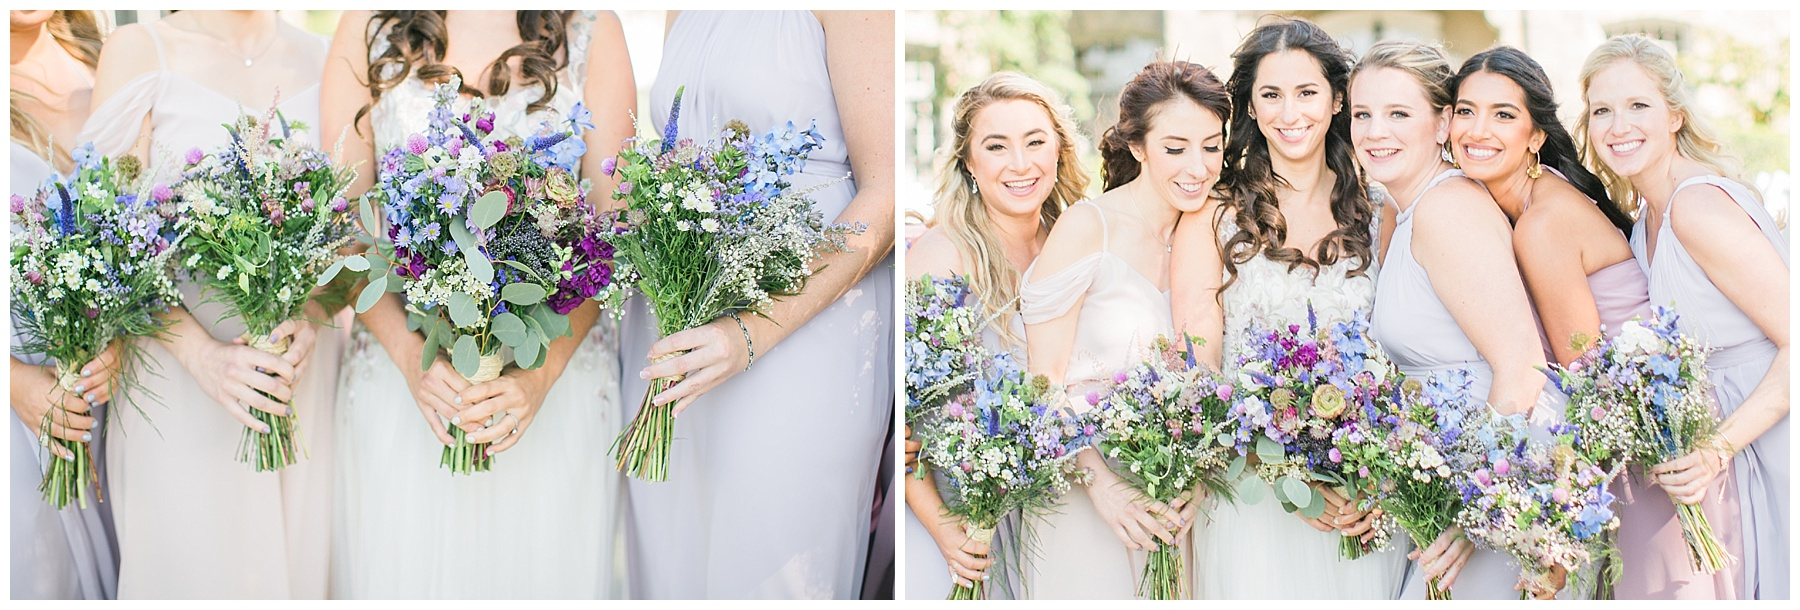 wanderlove-wedding-photographer-wainwright-rye-newyork-elegant-autumn-wedding-bridalparty-bridal-party-purple-bouquets